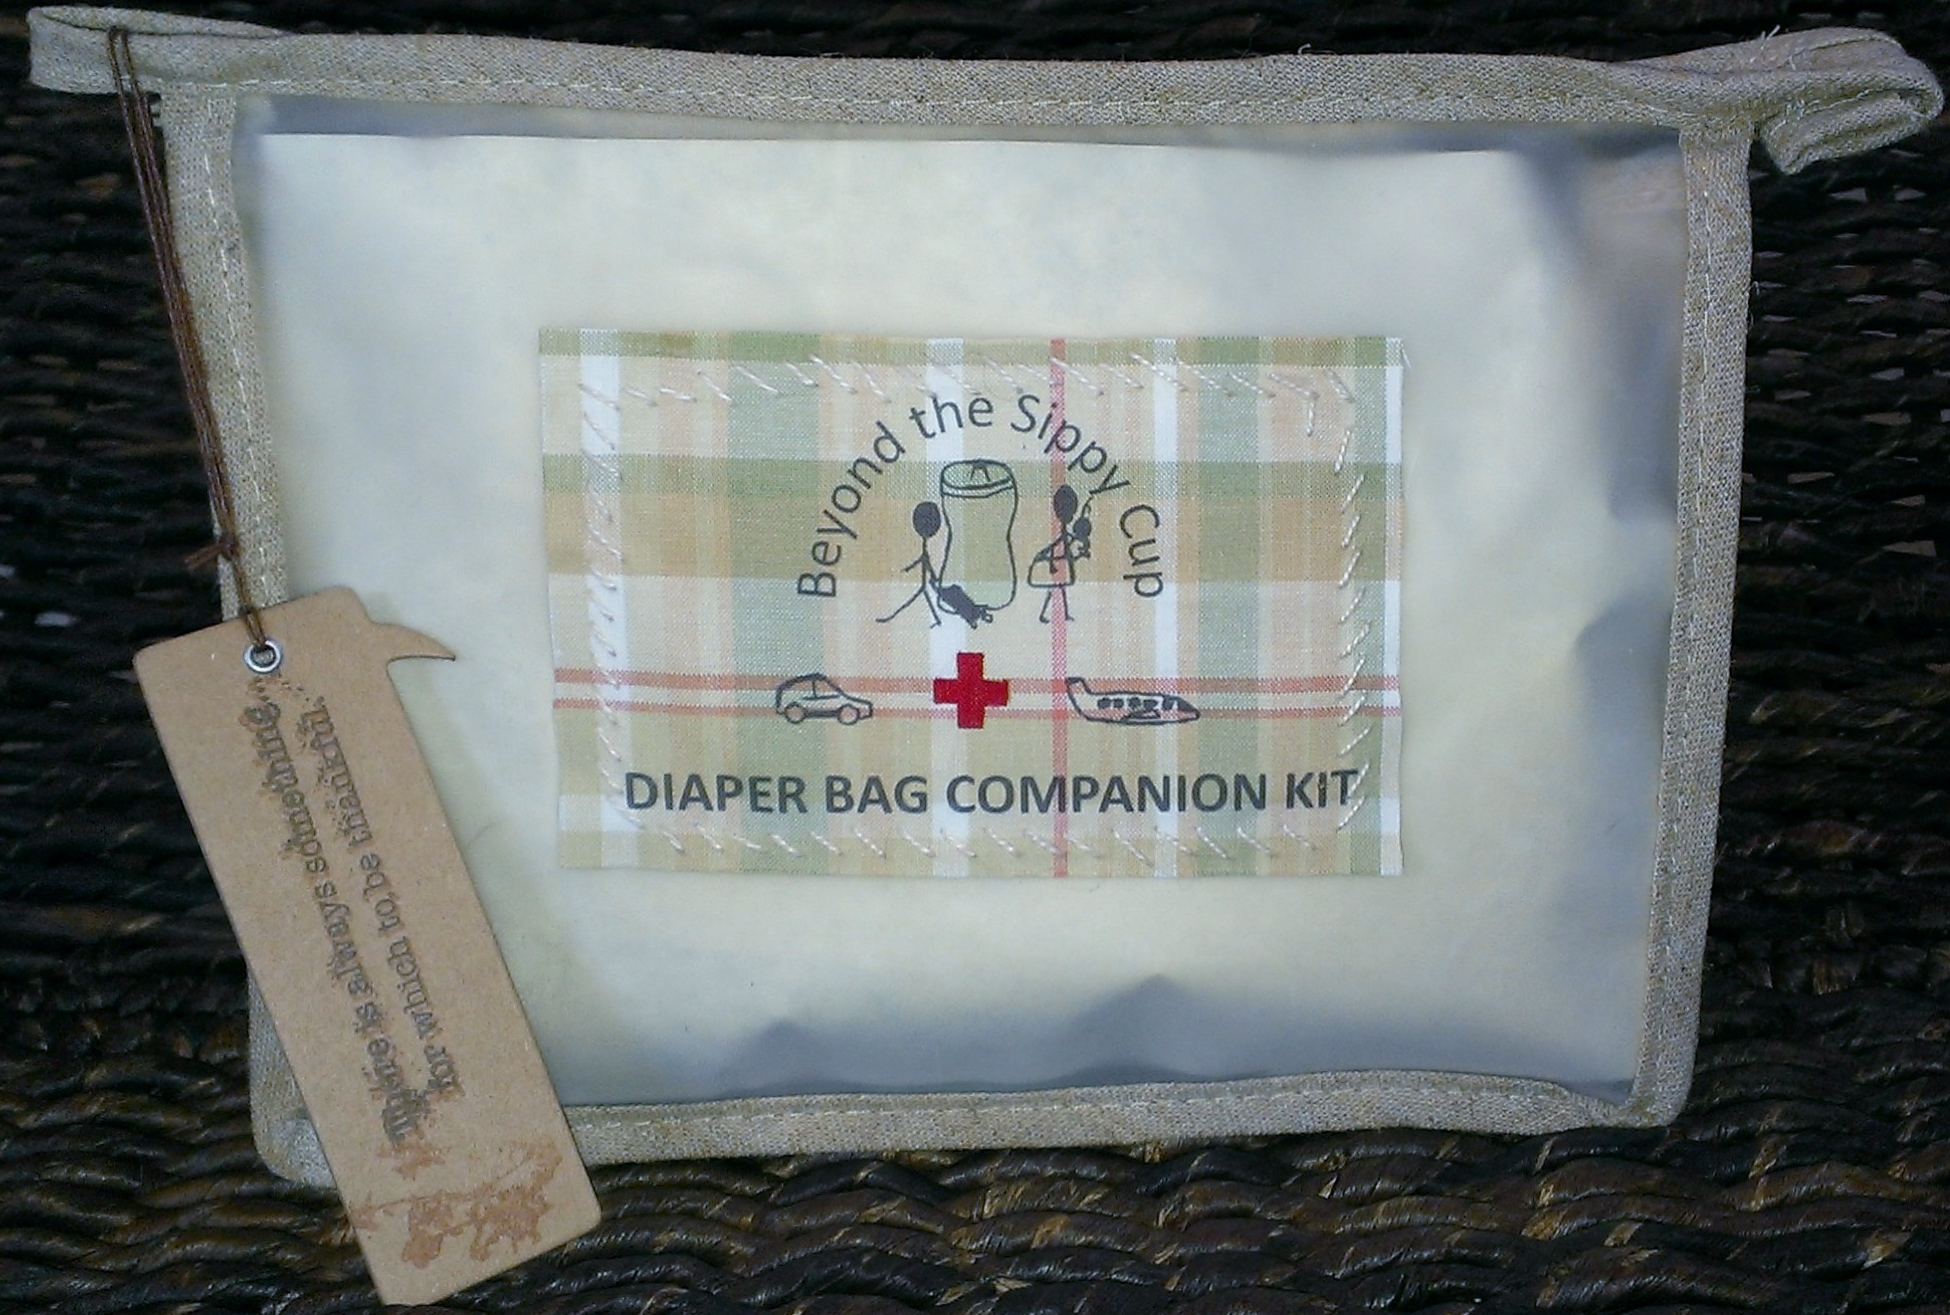 Deluxe Diaper Bag Companion Kit